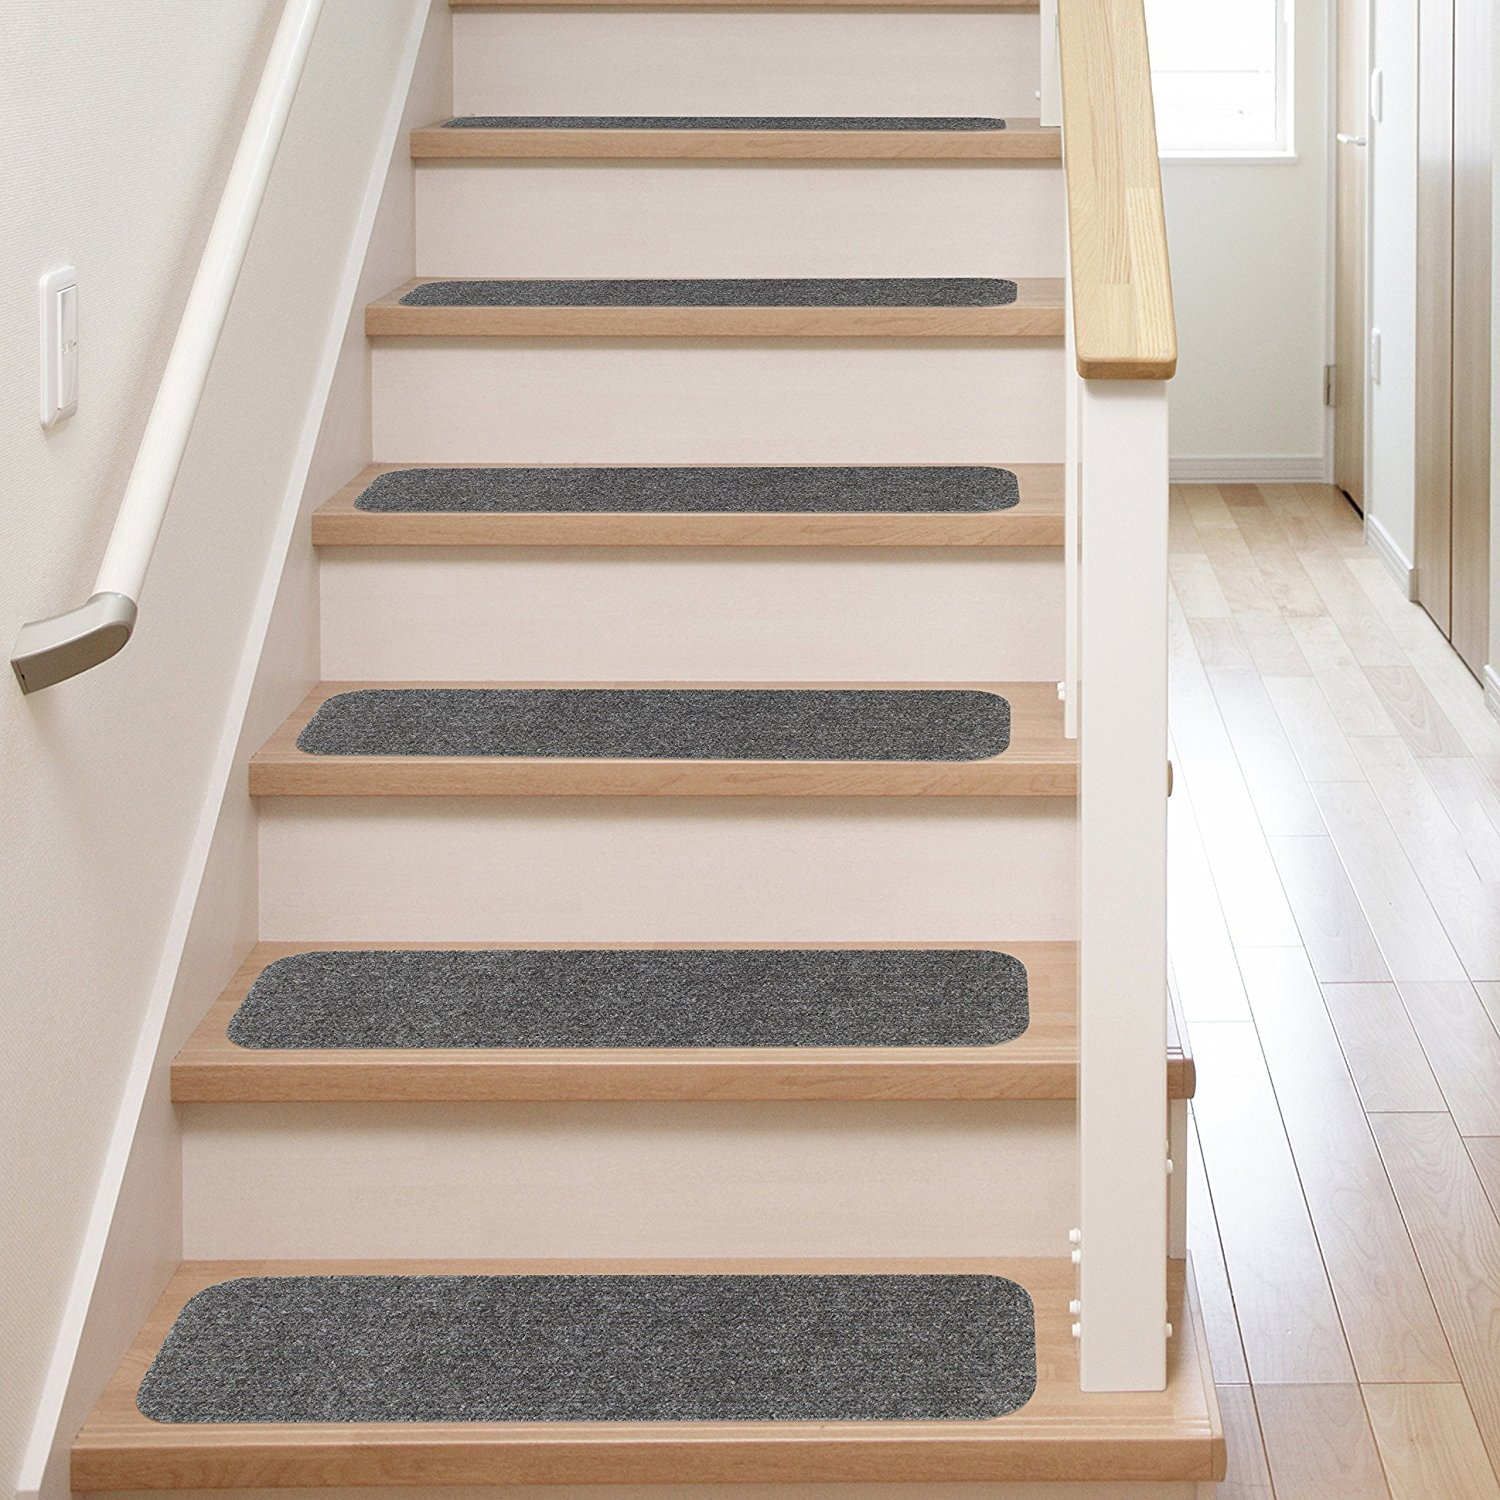 13 Stair Treads Non Slip Carpet Pads Easy Tape Installation In Stair Tread Rugs Indoor (Photo 12 of 15)